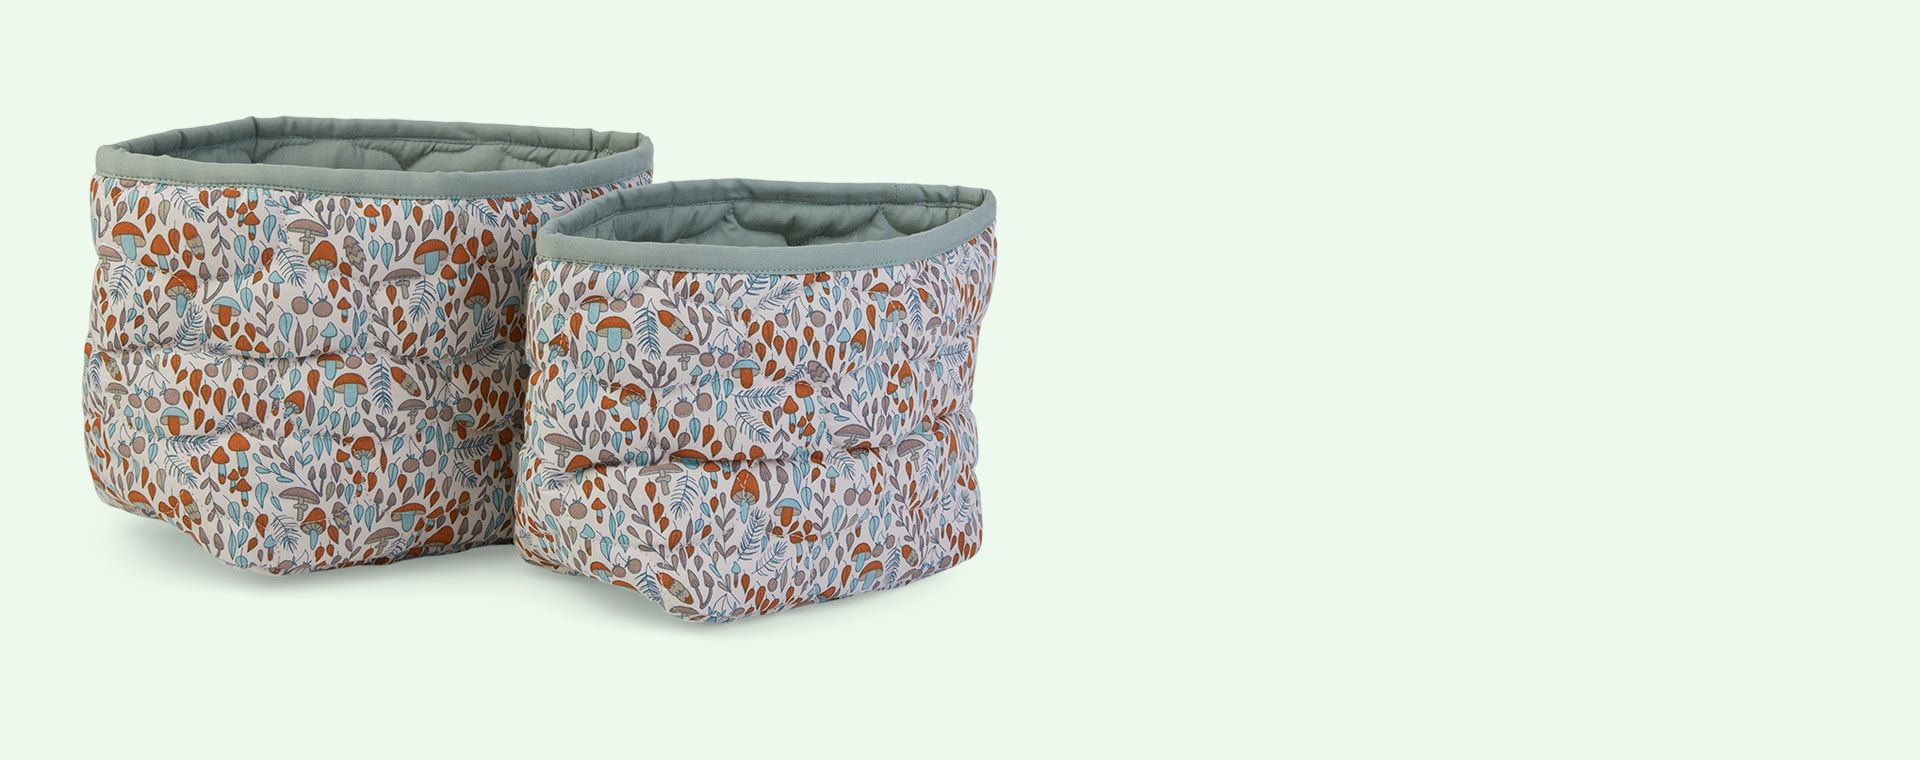 Woodland Walk Avery Row Quilted Reversible Storage Baskets 2-Pack